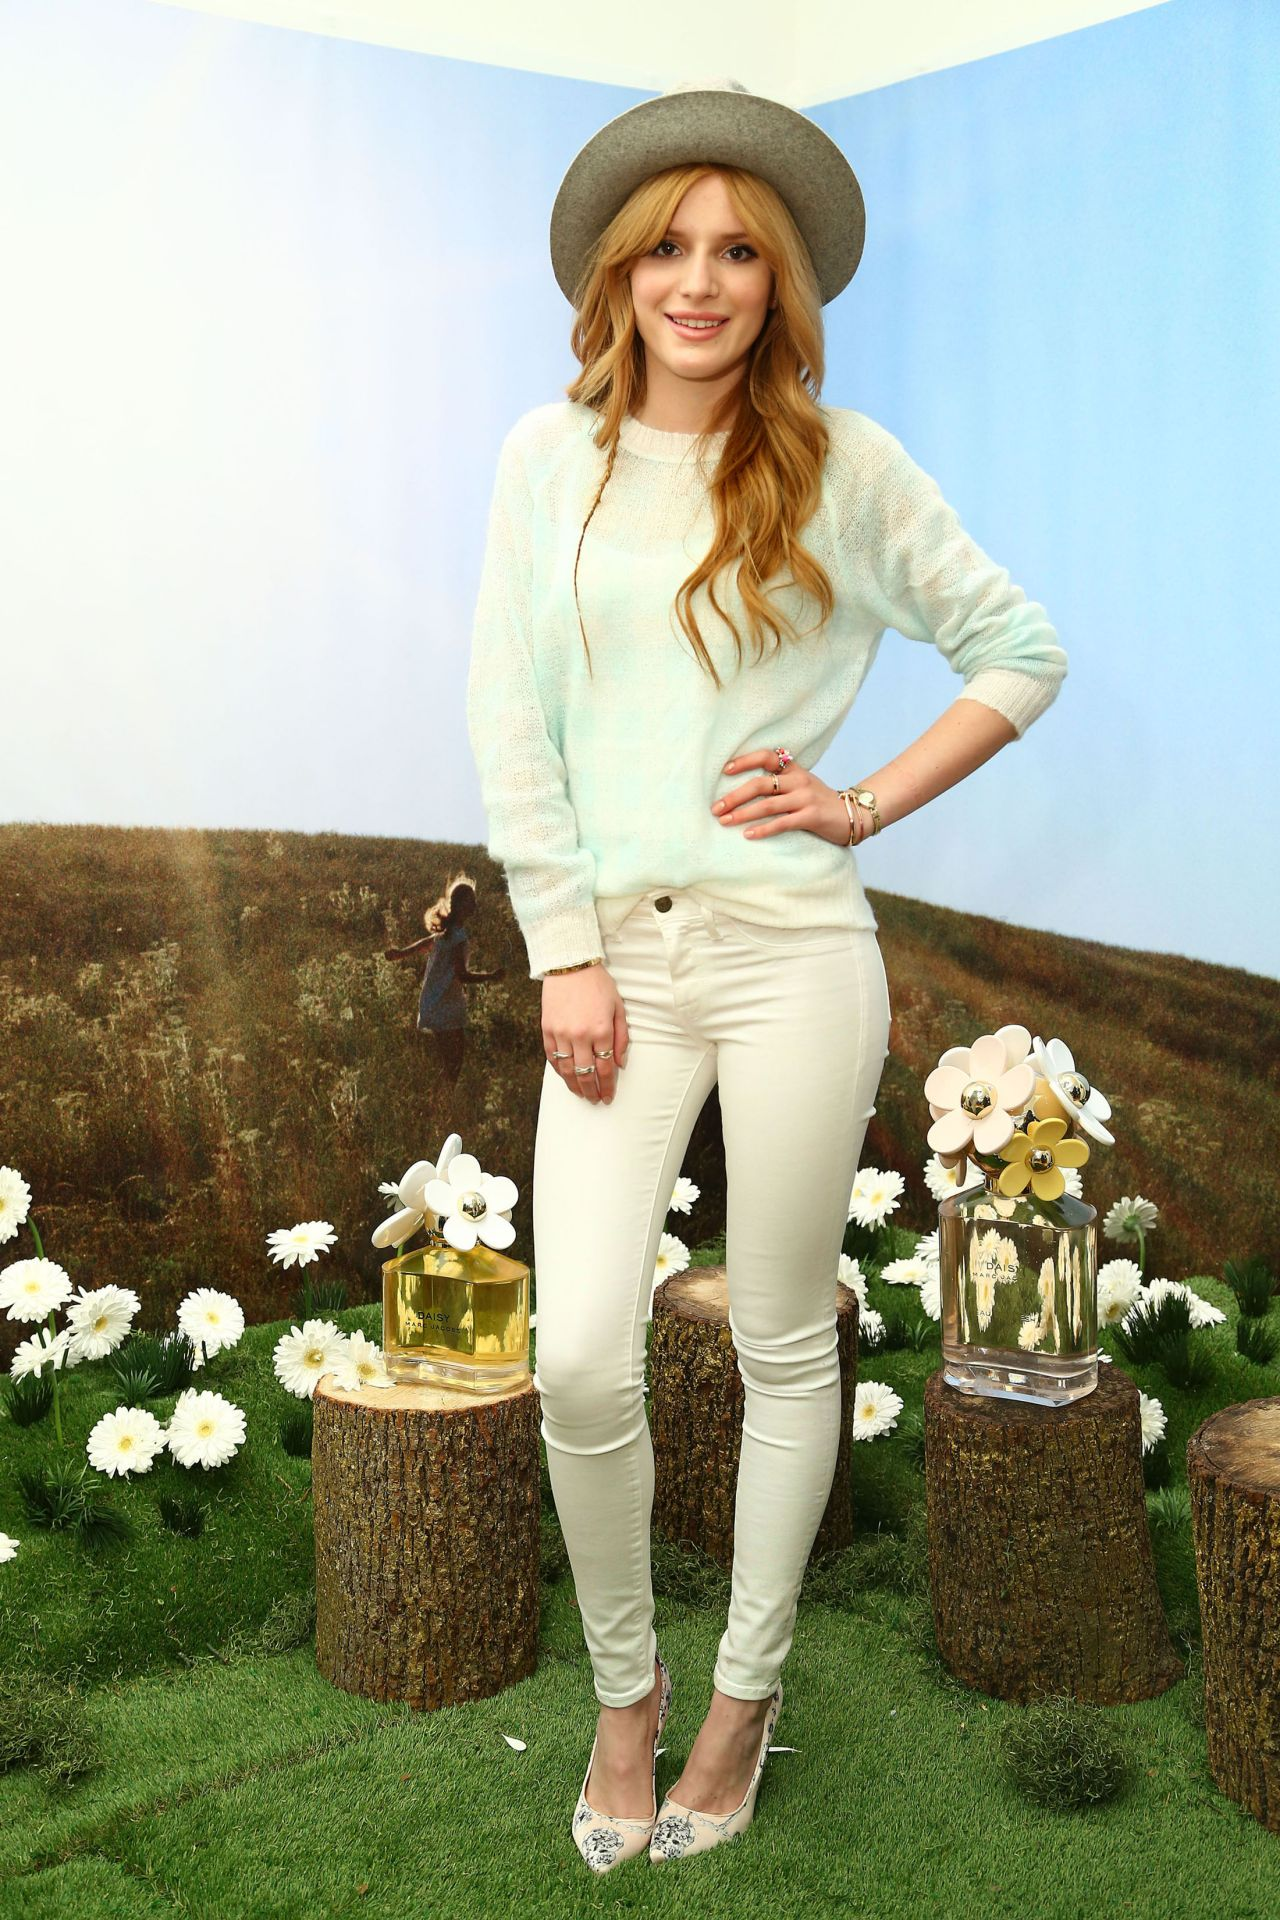 Bella Thorne - Photoshoot for Marc Jacobs Daisy Tweet Shop in New York